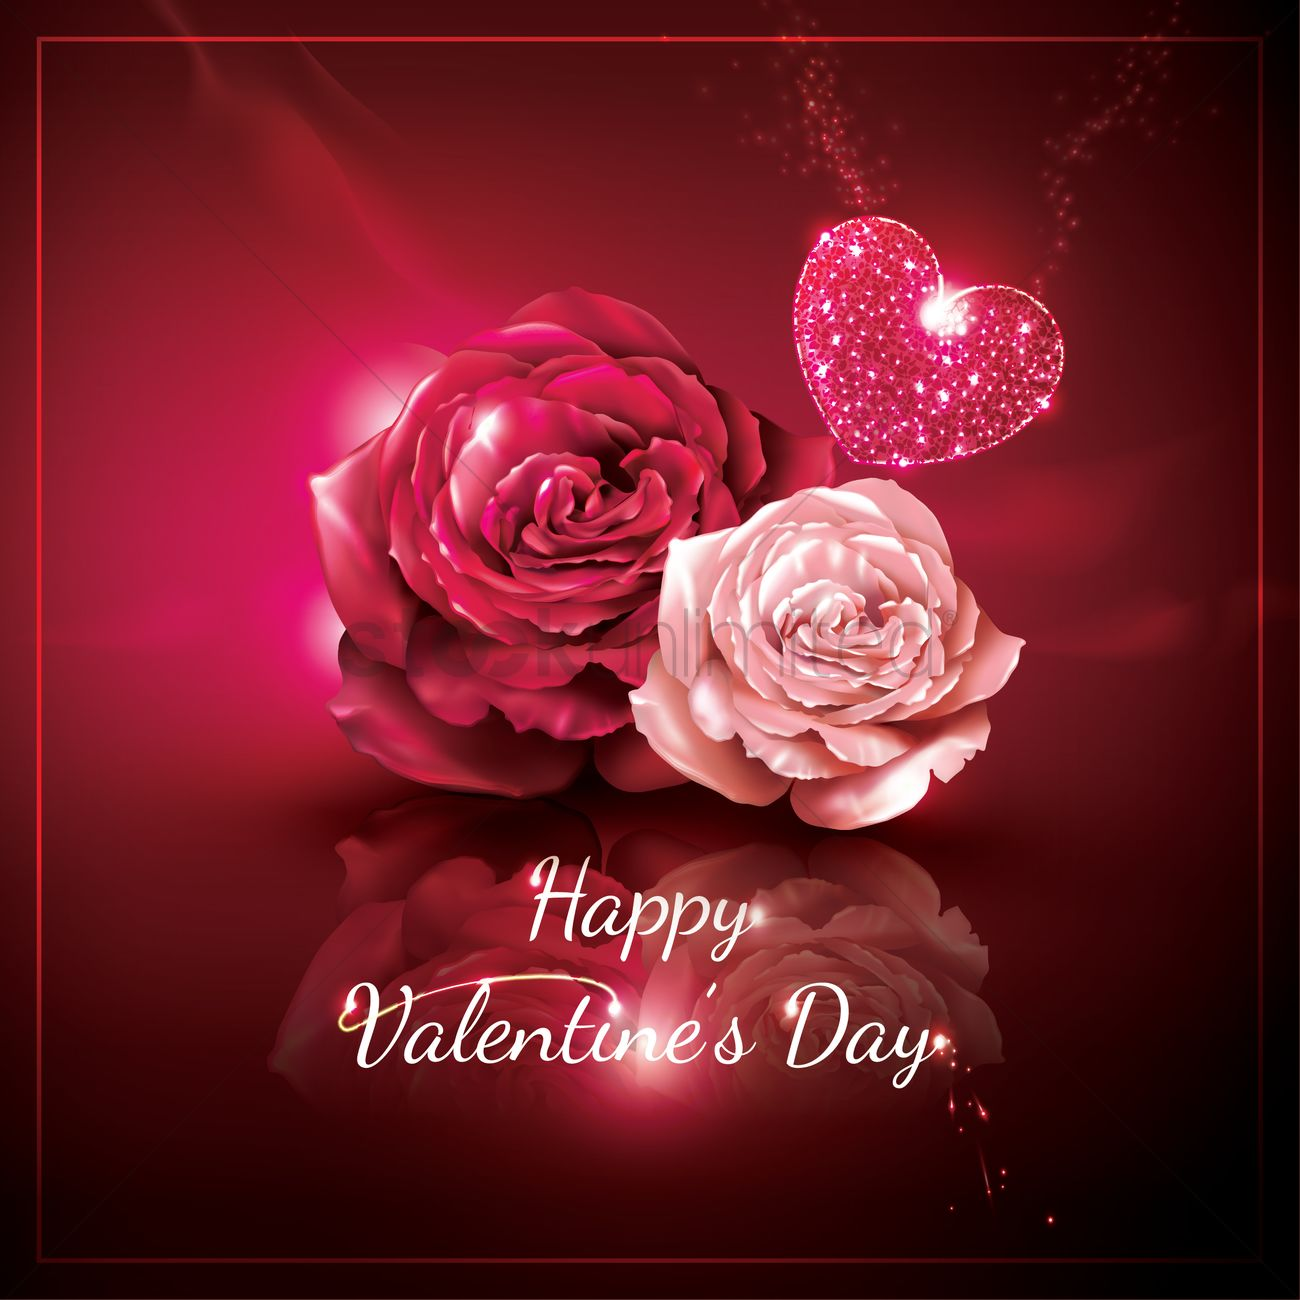 70 most beautiful valentines day greeting pictures and images happy valentines day rose flowers and heart picture kristyandbryce Image collections